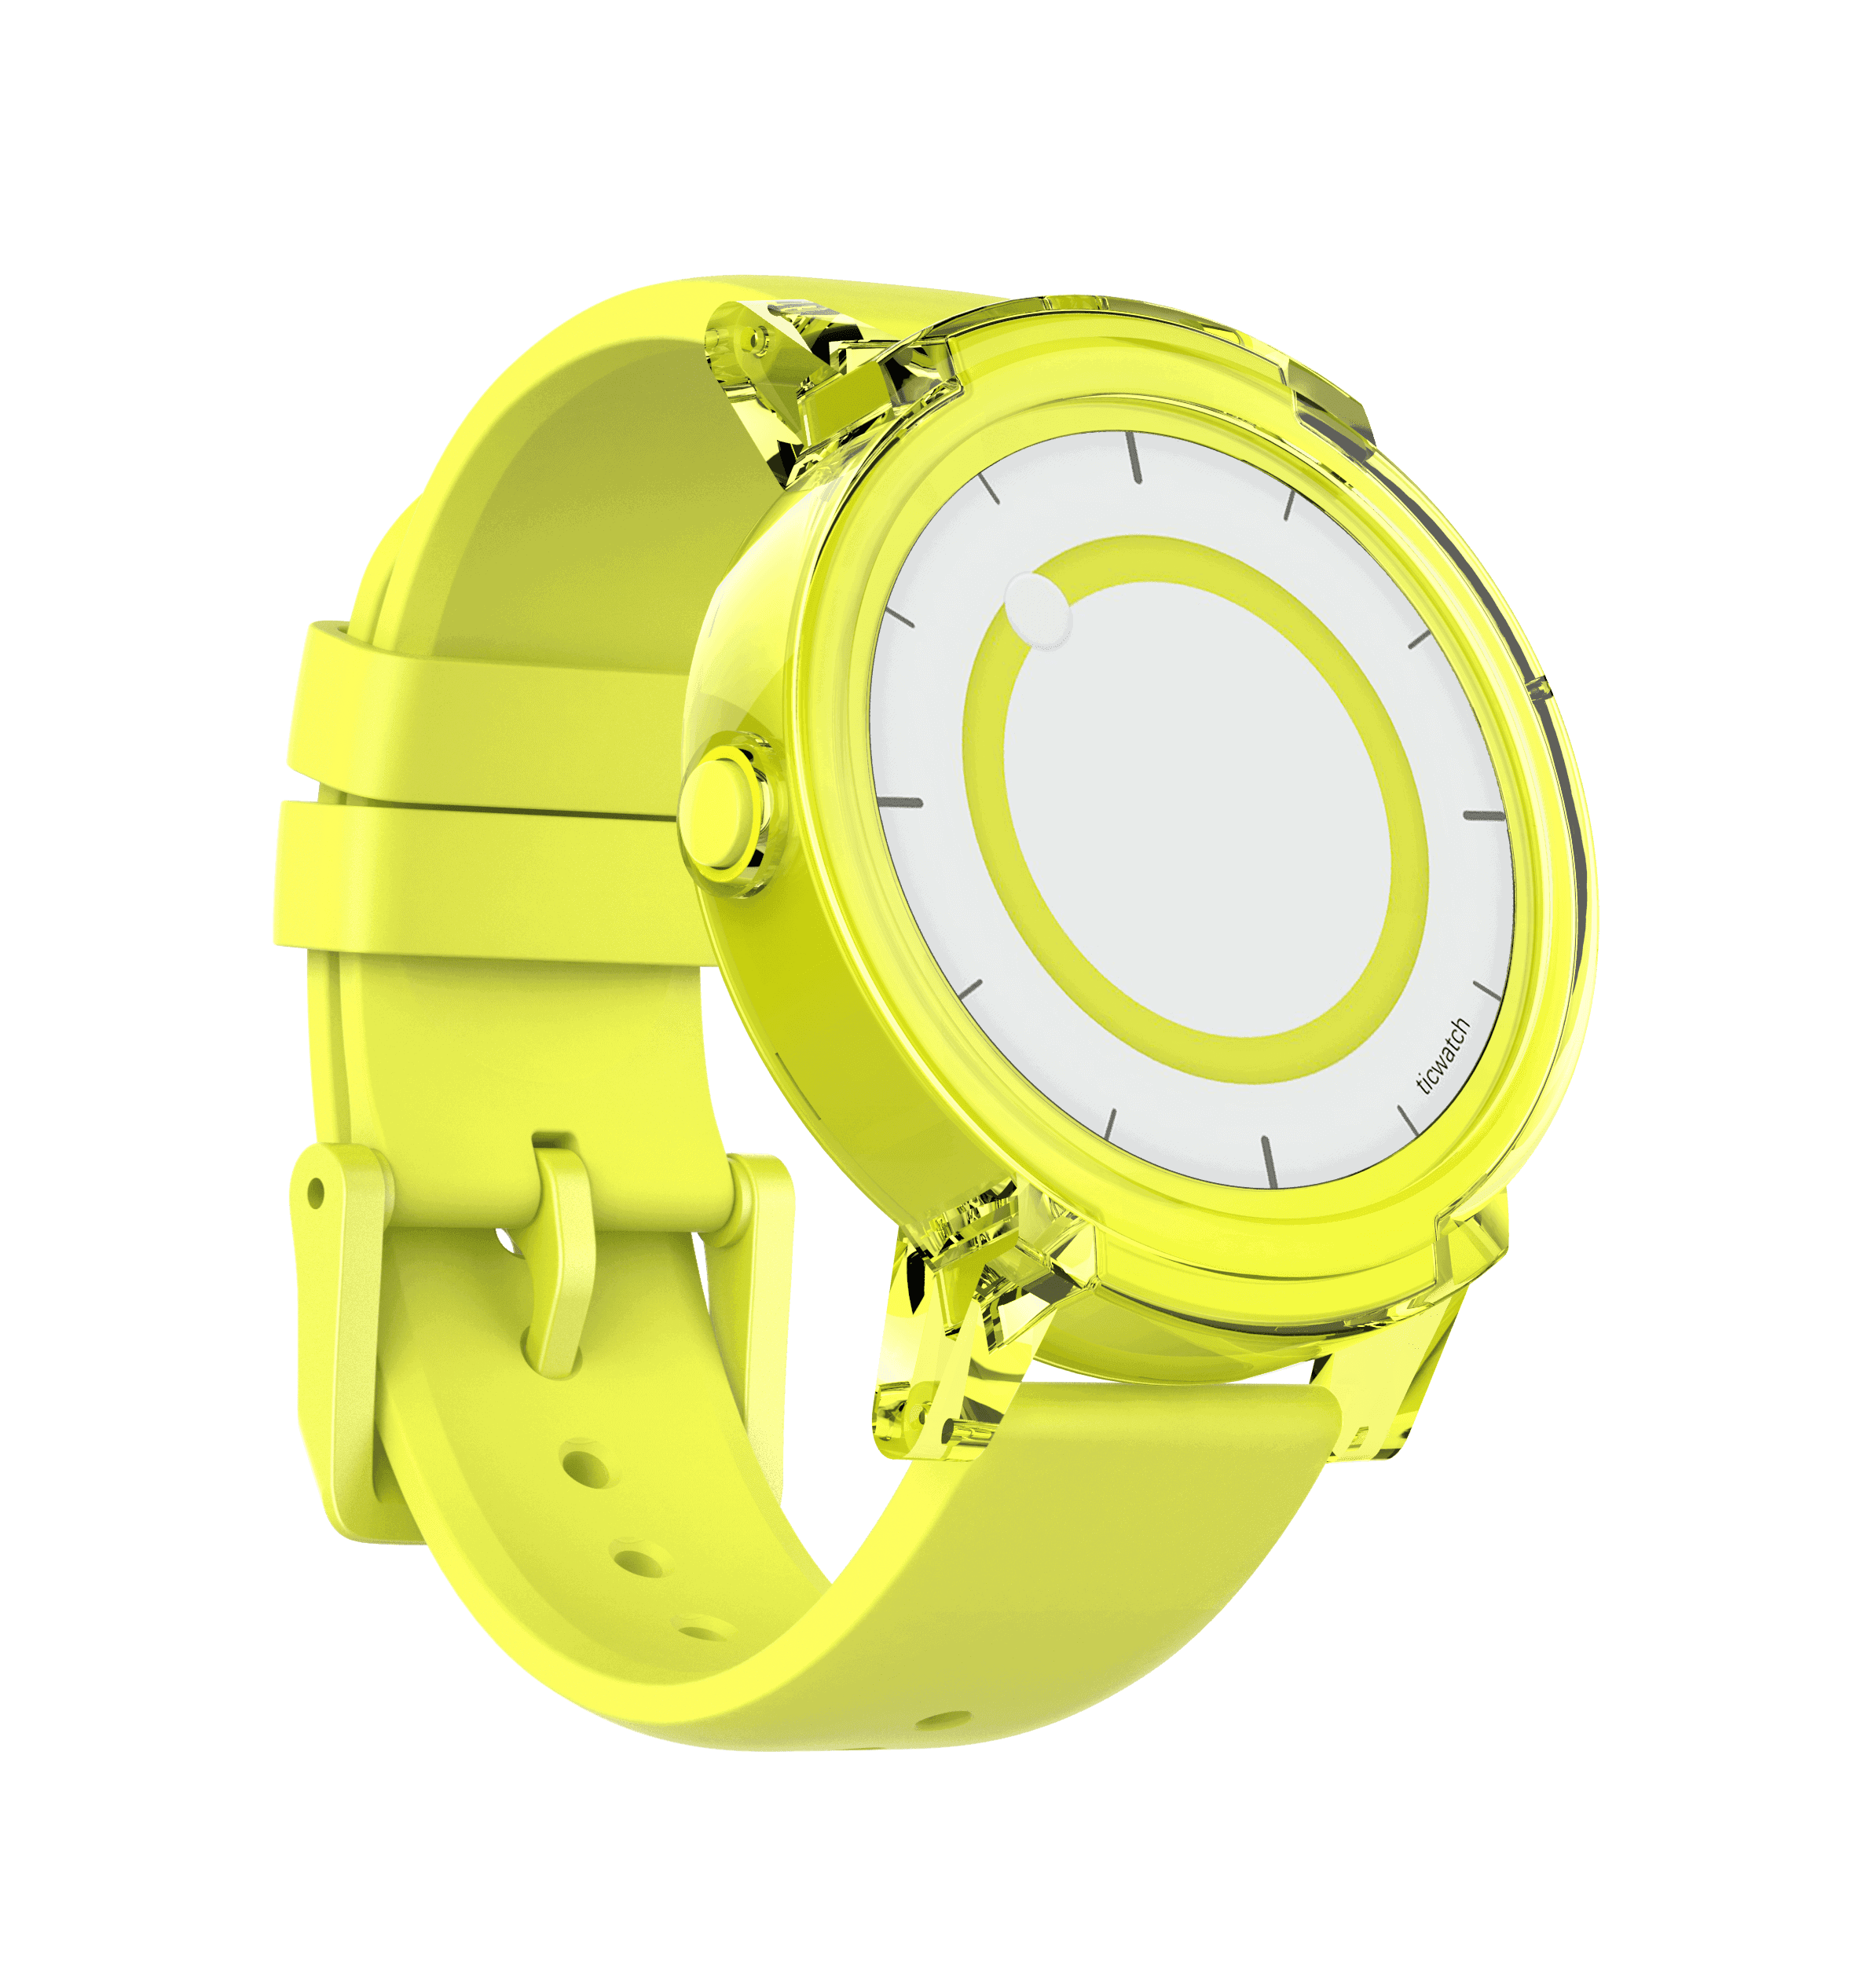 Express yellow fastened